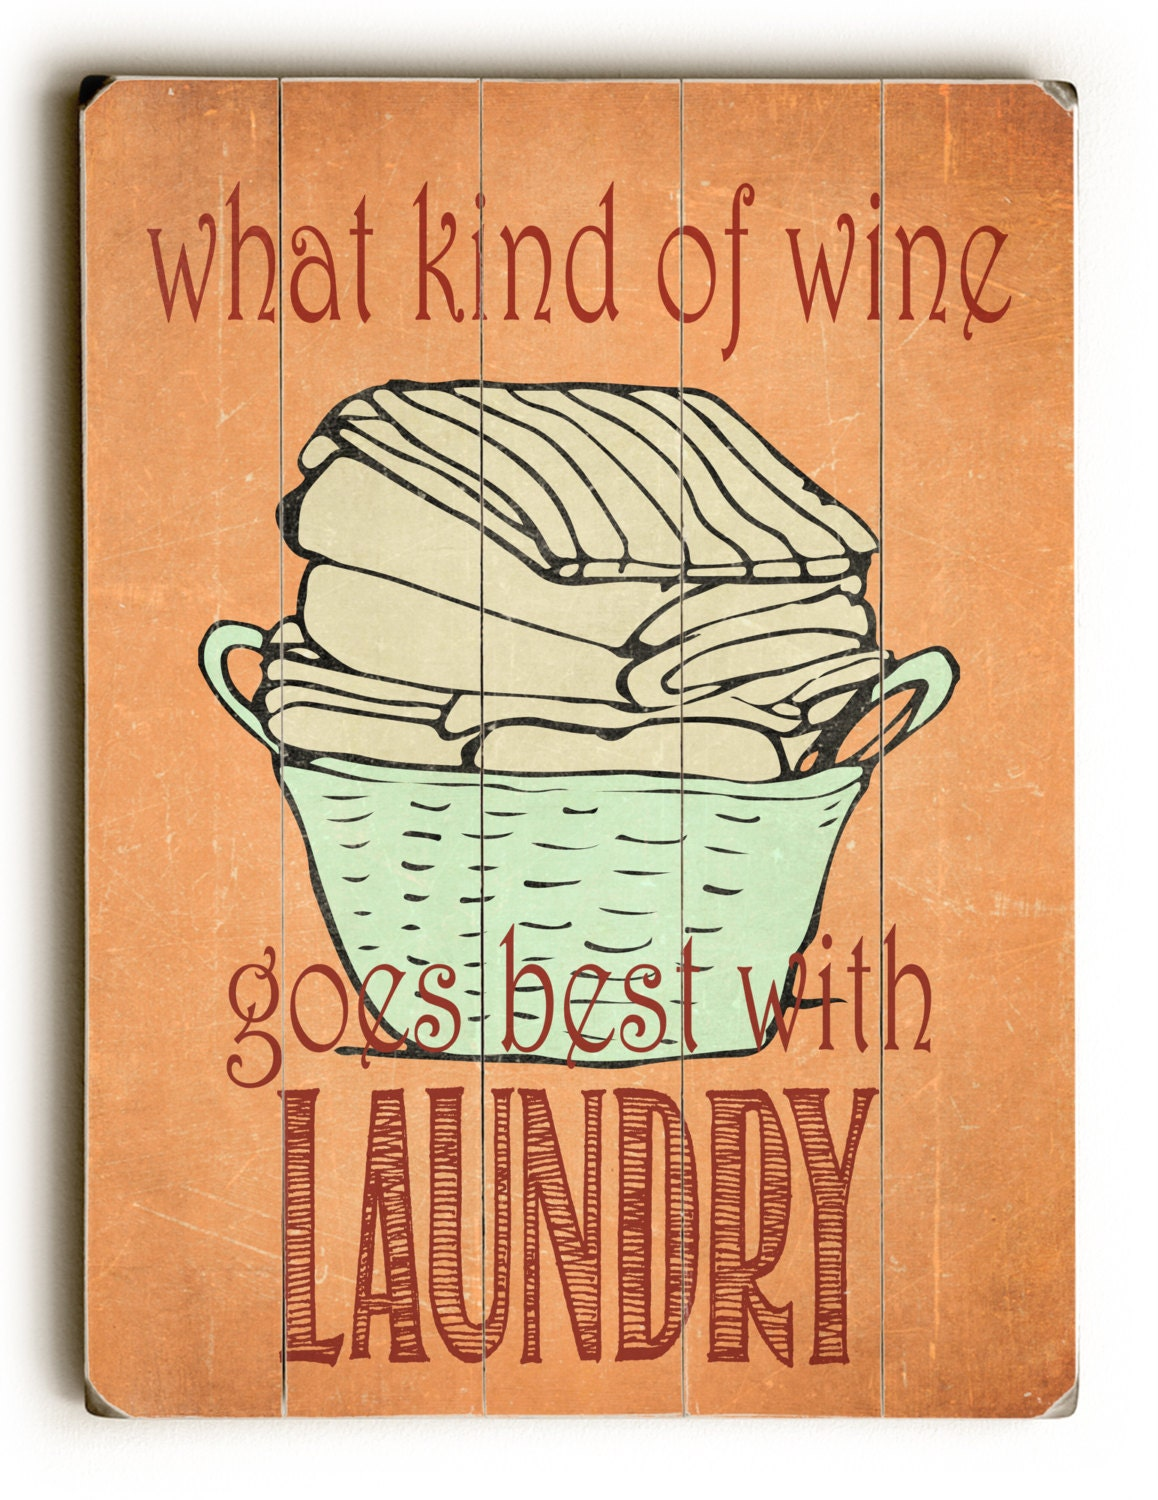 Wooden Sign Laundry Room Decor Inspirational Sign Vintage